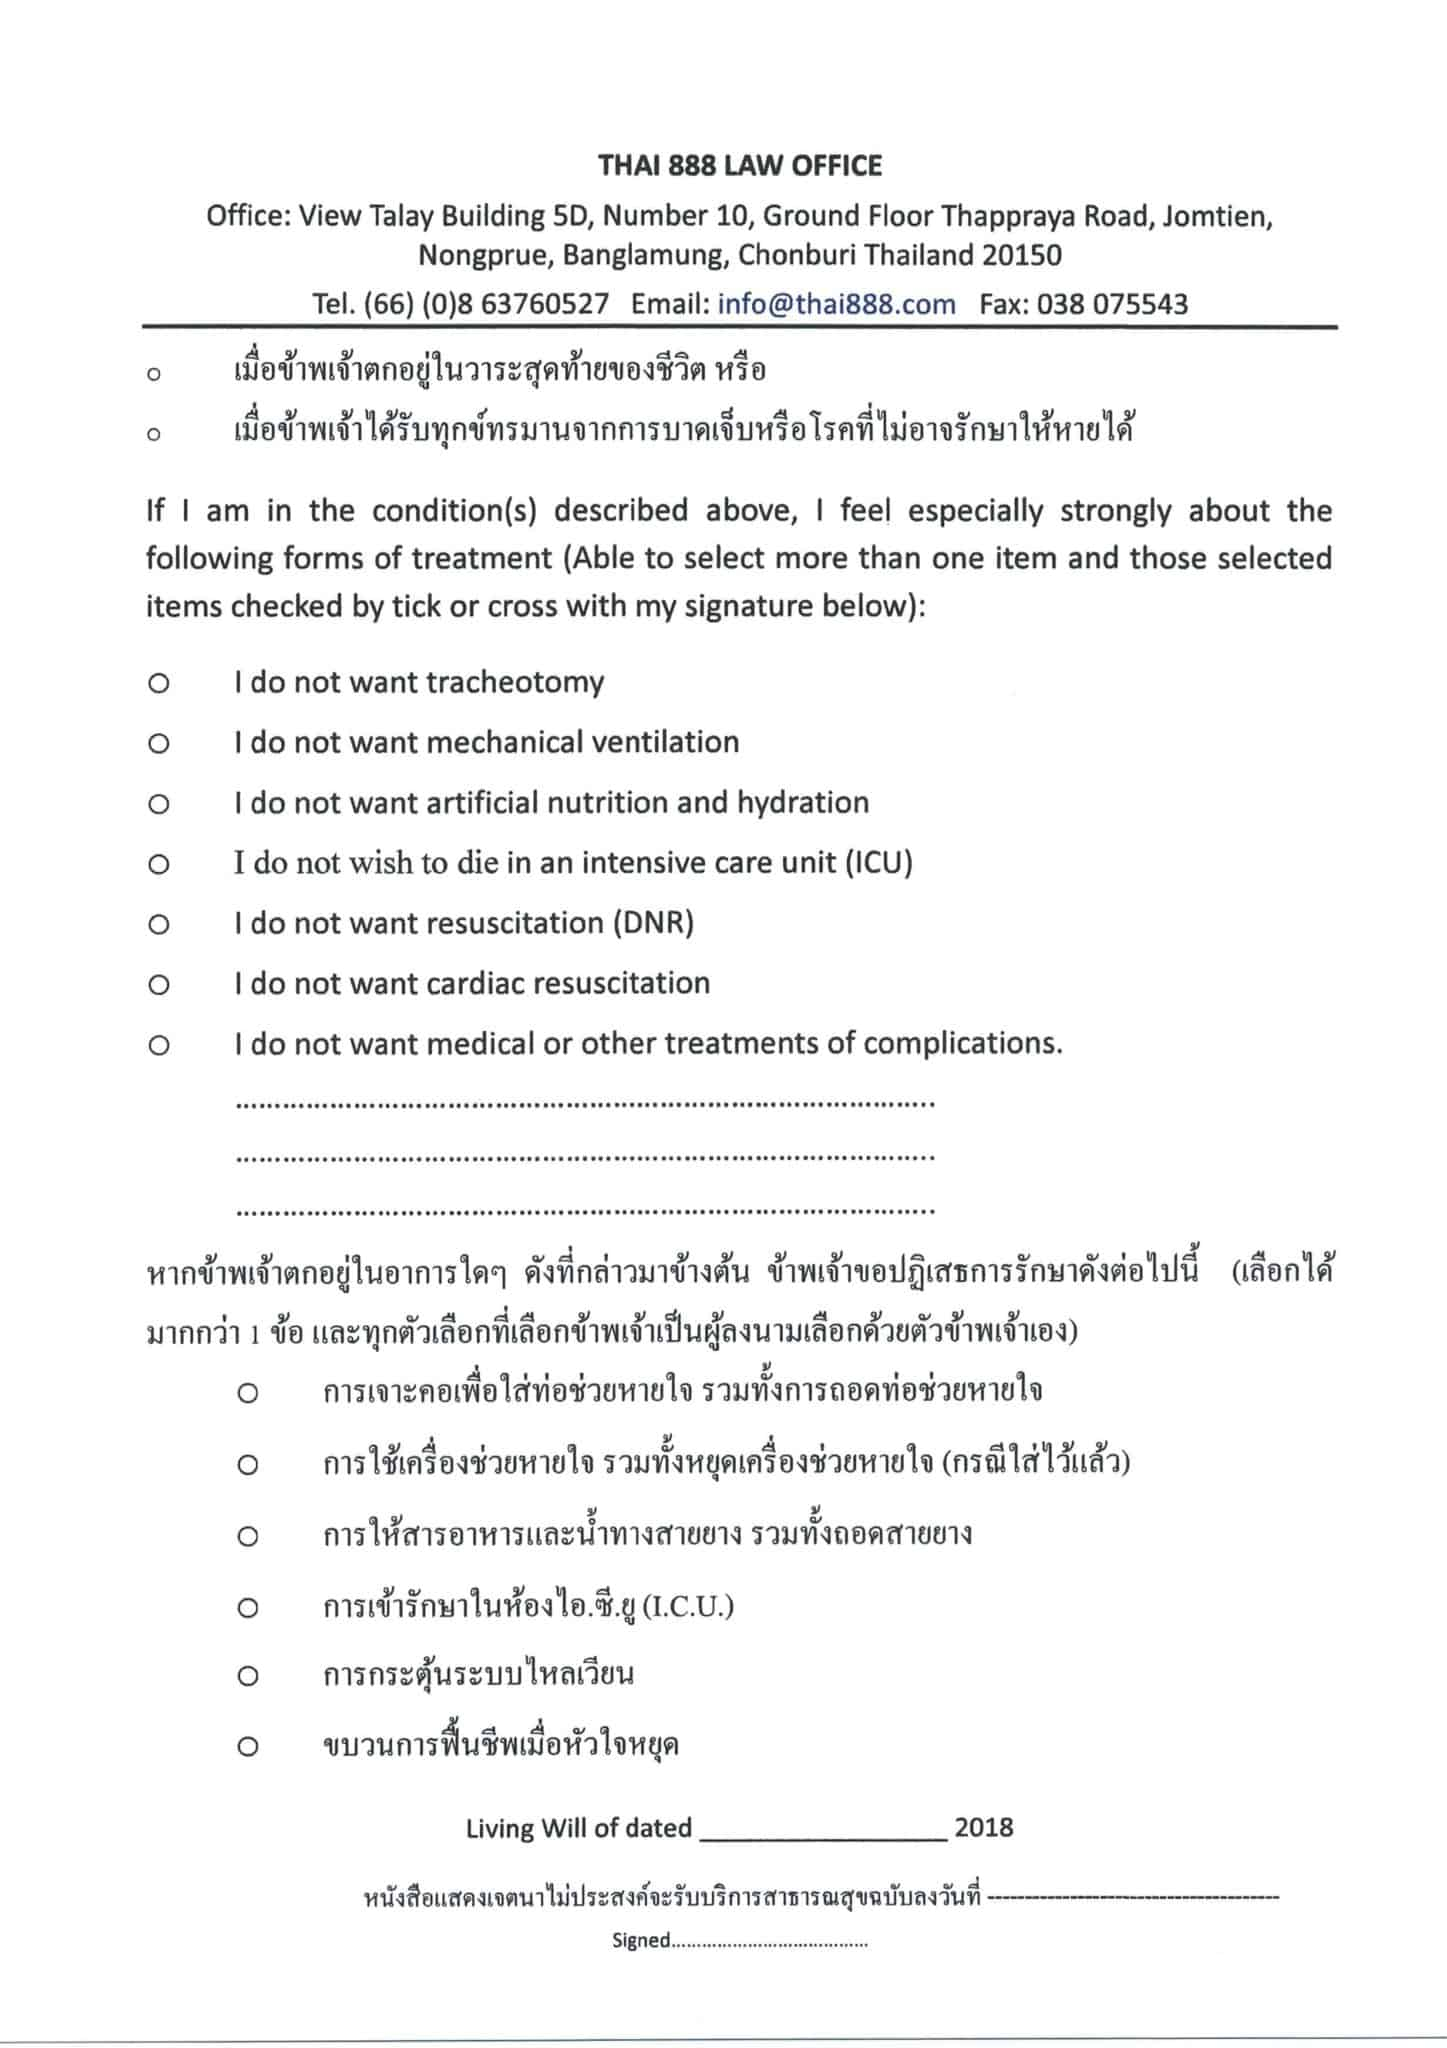 How to make a Living Will Thailand Thai888 Law 2019